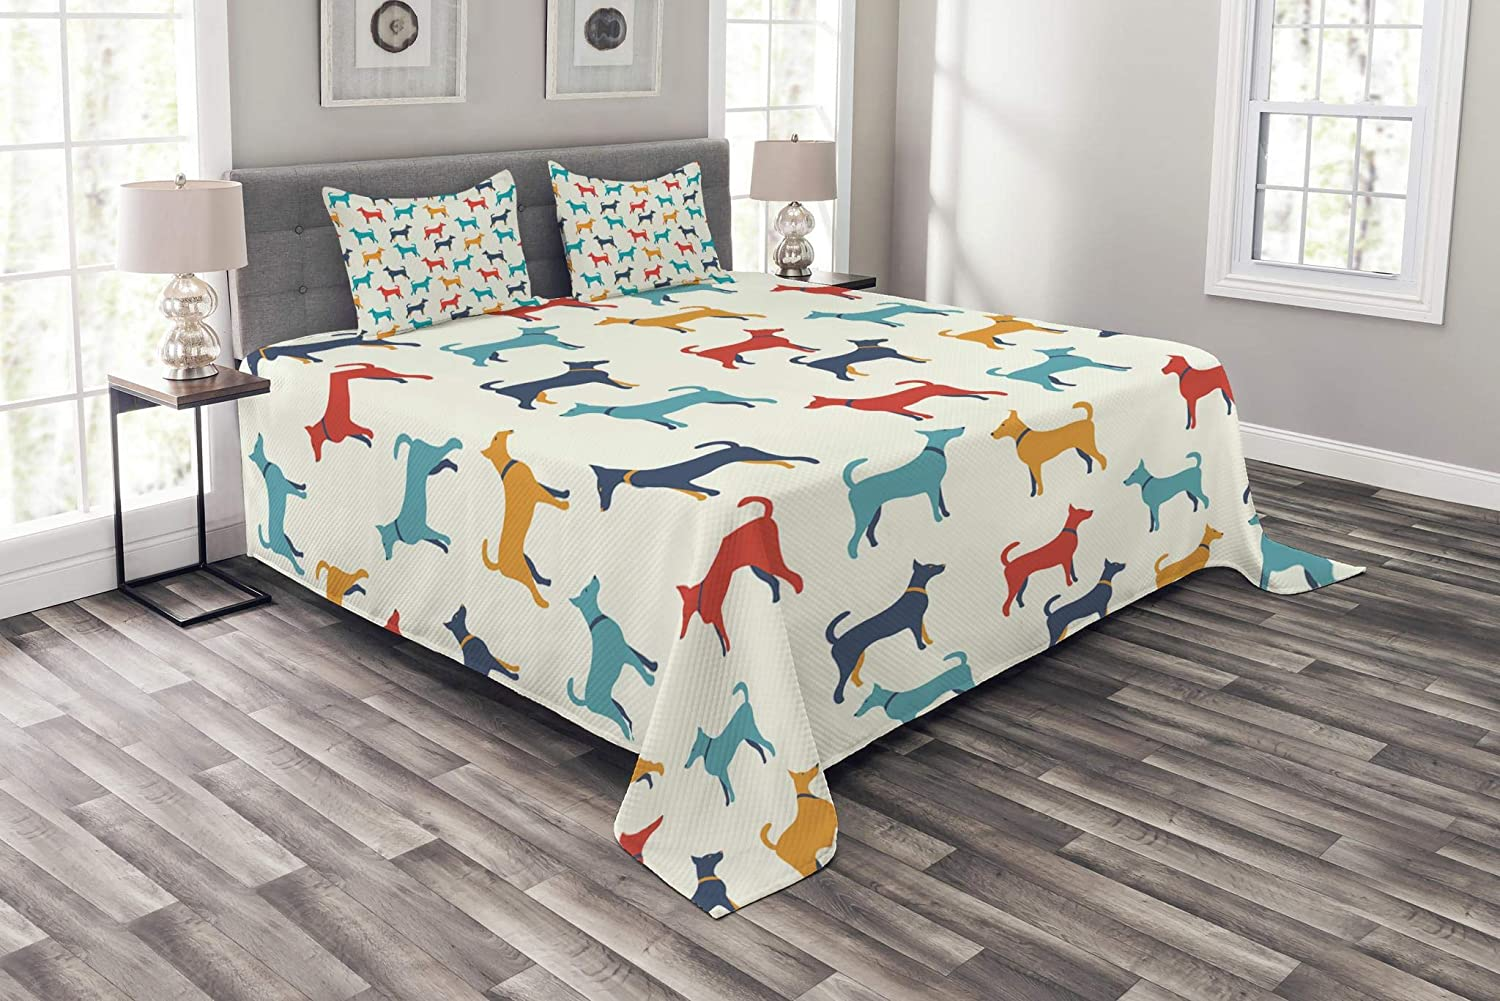 Ambesonne Dog Bedspread, Contemporary Colorful Illustration of Dog with Contours in Retro Style Print, Decorative Quilted 3 Piece Coverlet Set with 2 Pillow Shams, Queen Size, Teal Beige